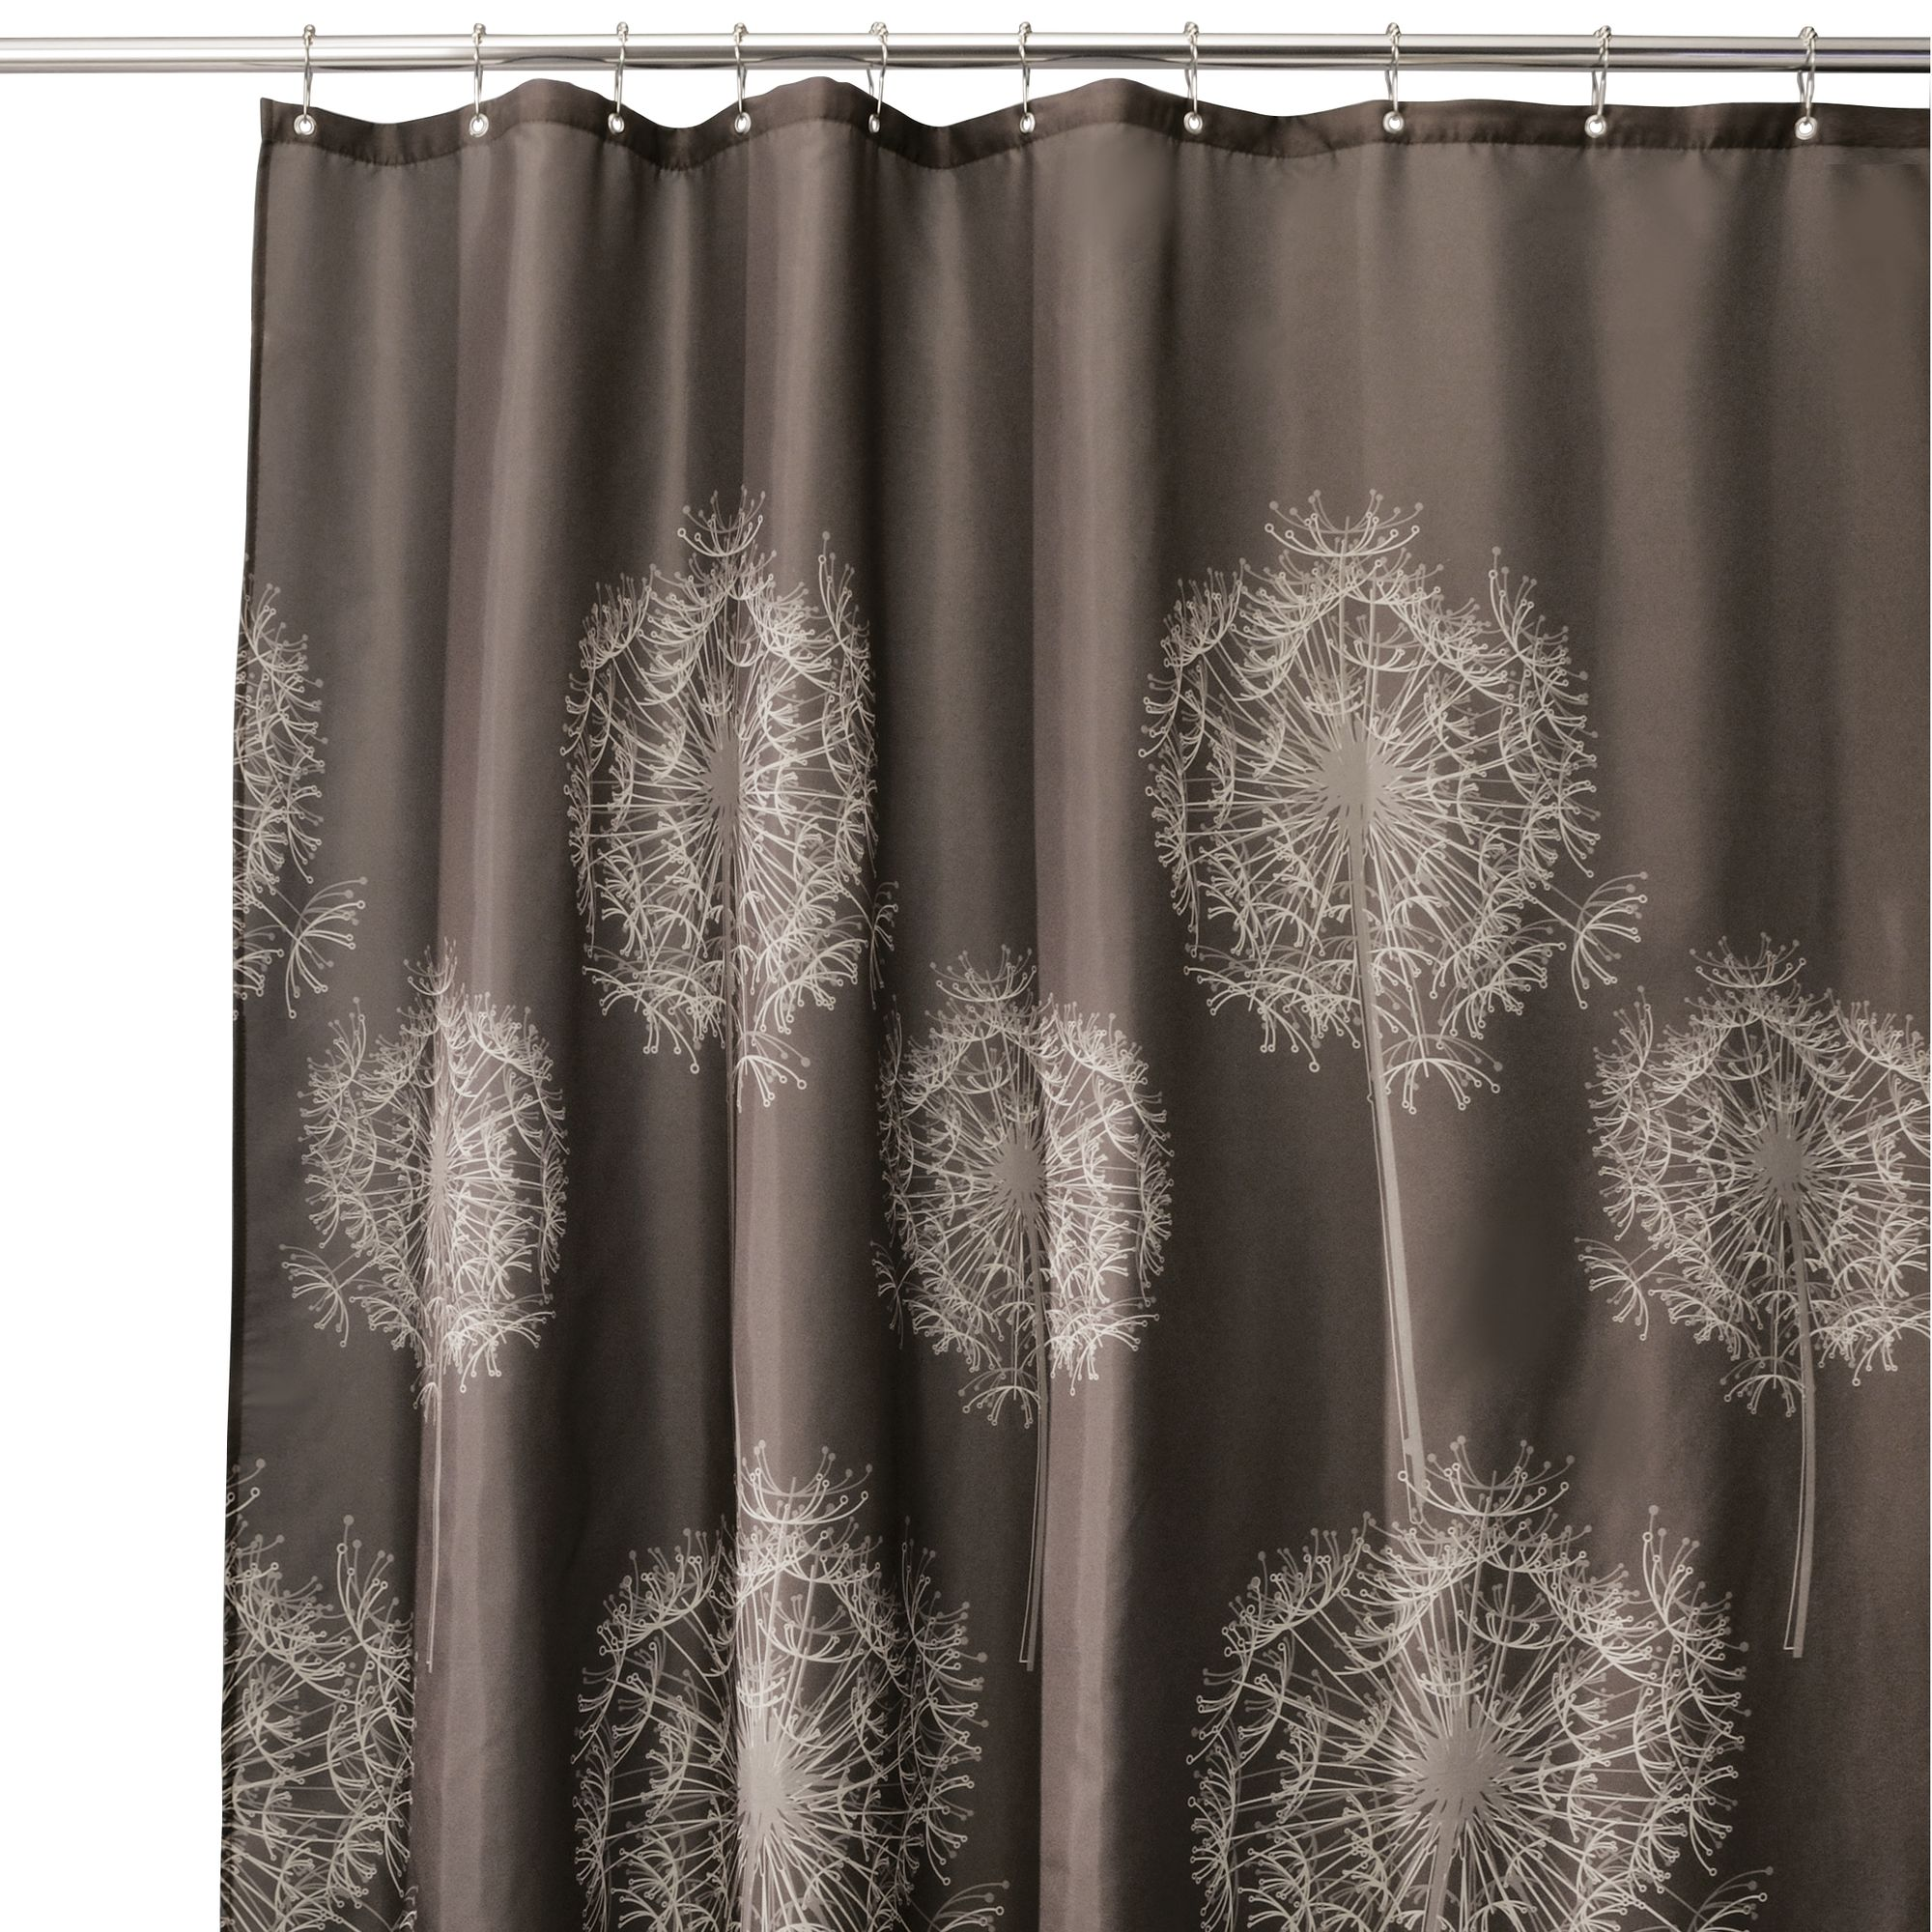 "InterDesign Dandelion Fabric Shower Curtain, Standard 72"" x 72"", Cocoa Brown"